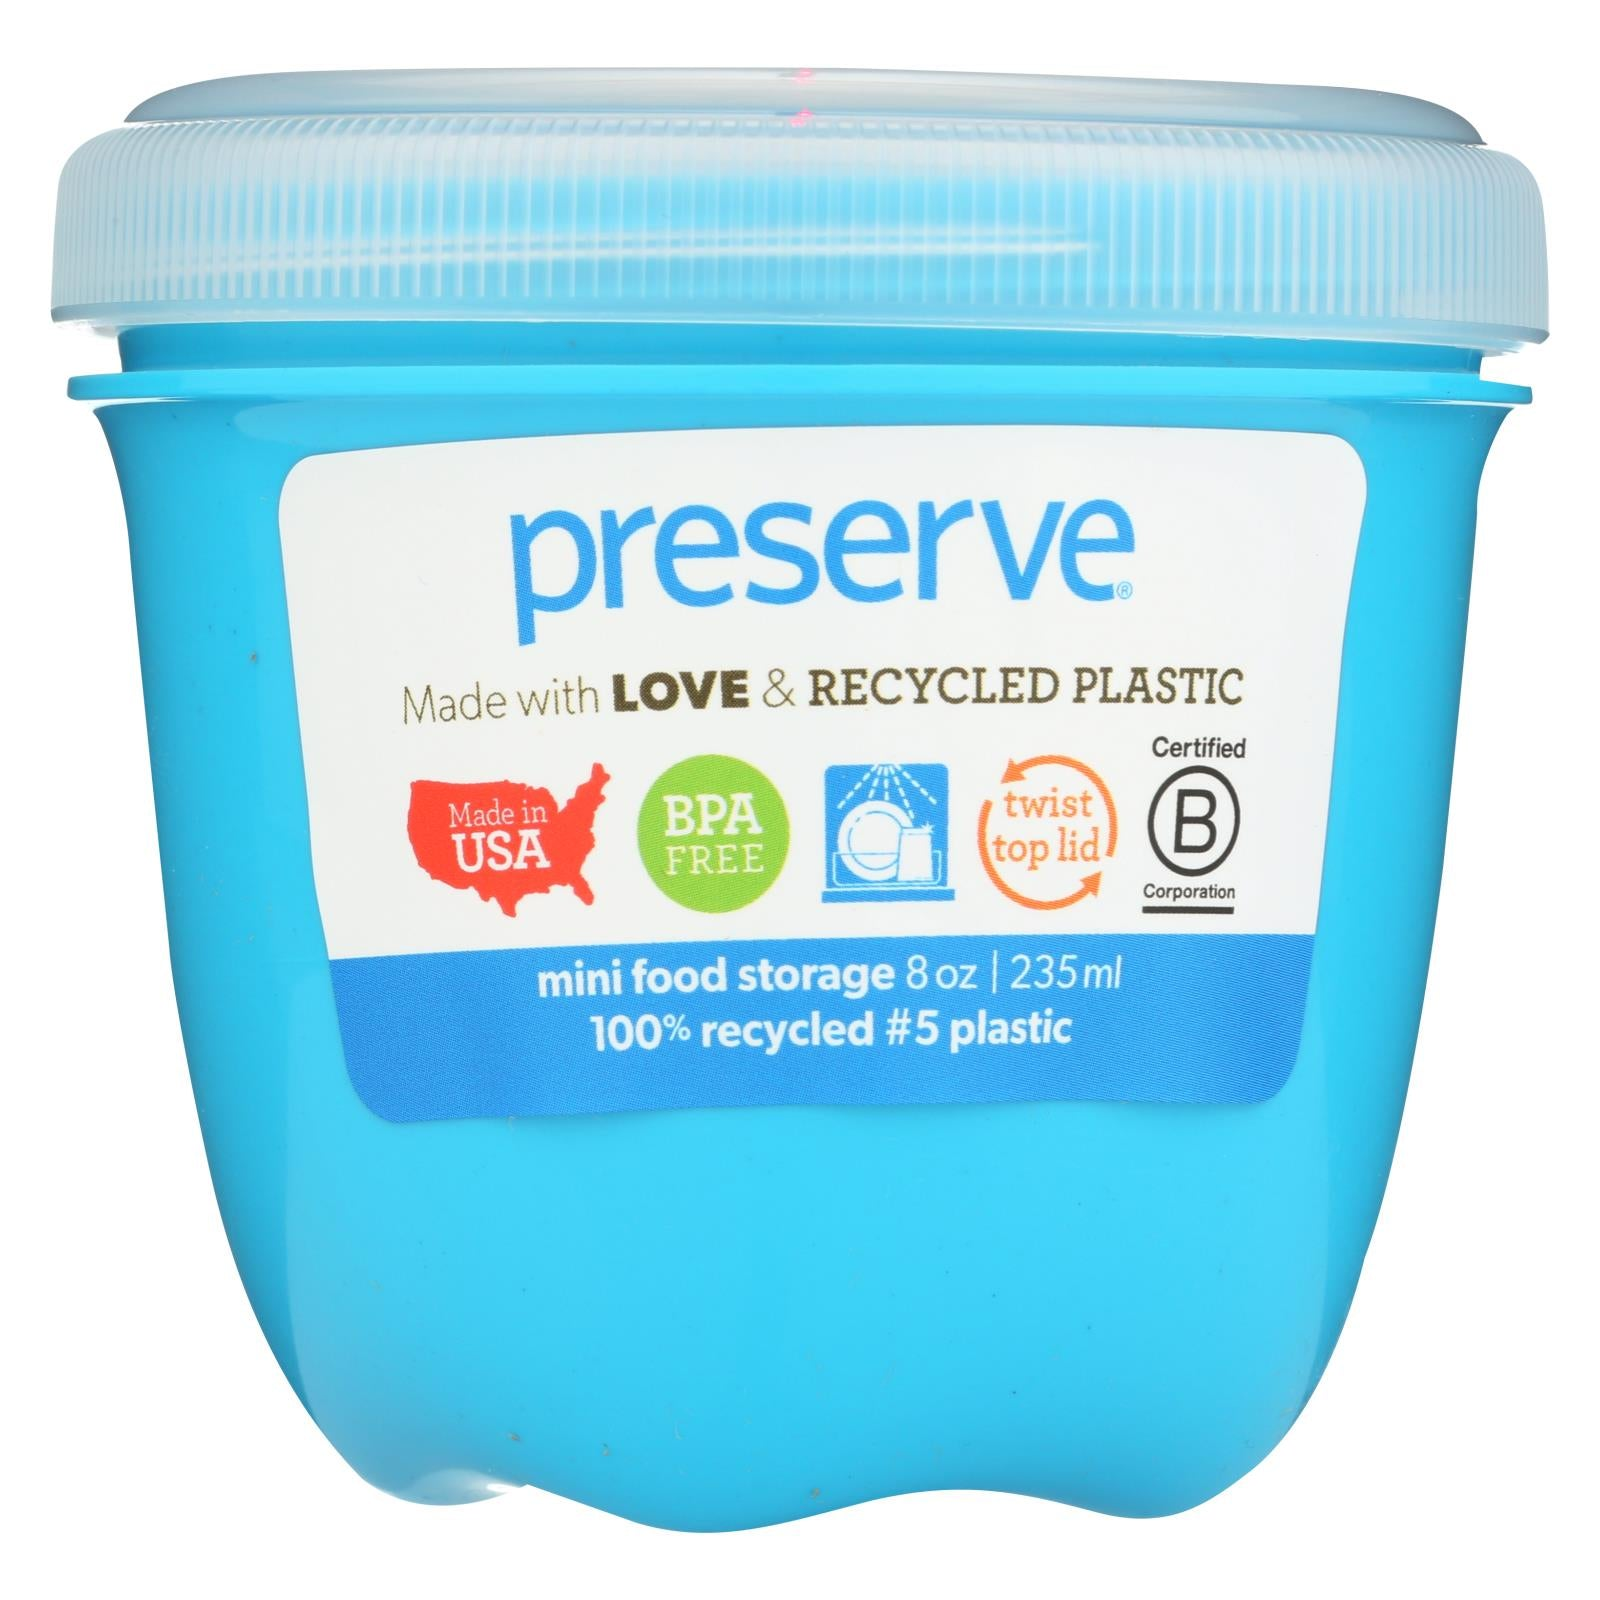 Buy Preserve Food Storage Container - Round - Mini - Aqua - 8 oz - 1 Count - Food Containers from Veroeco.com